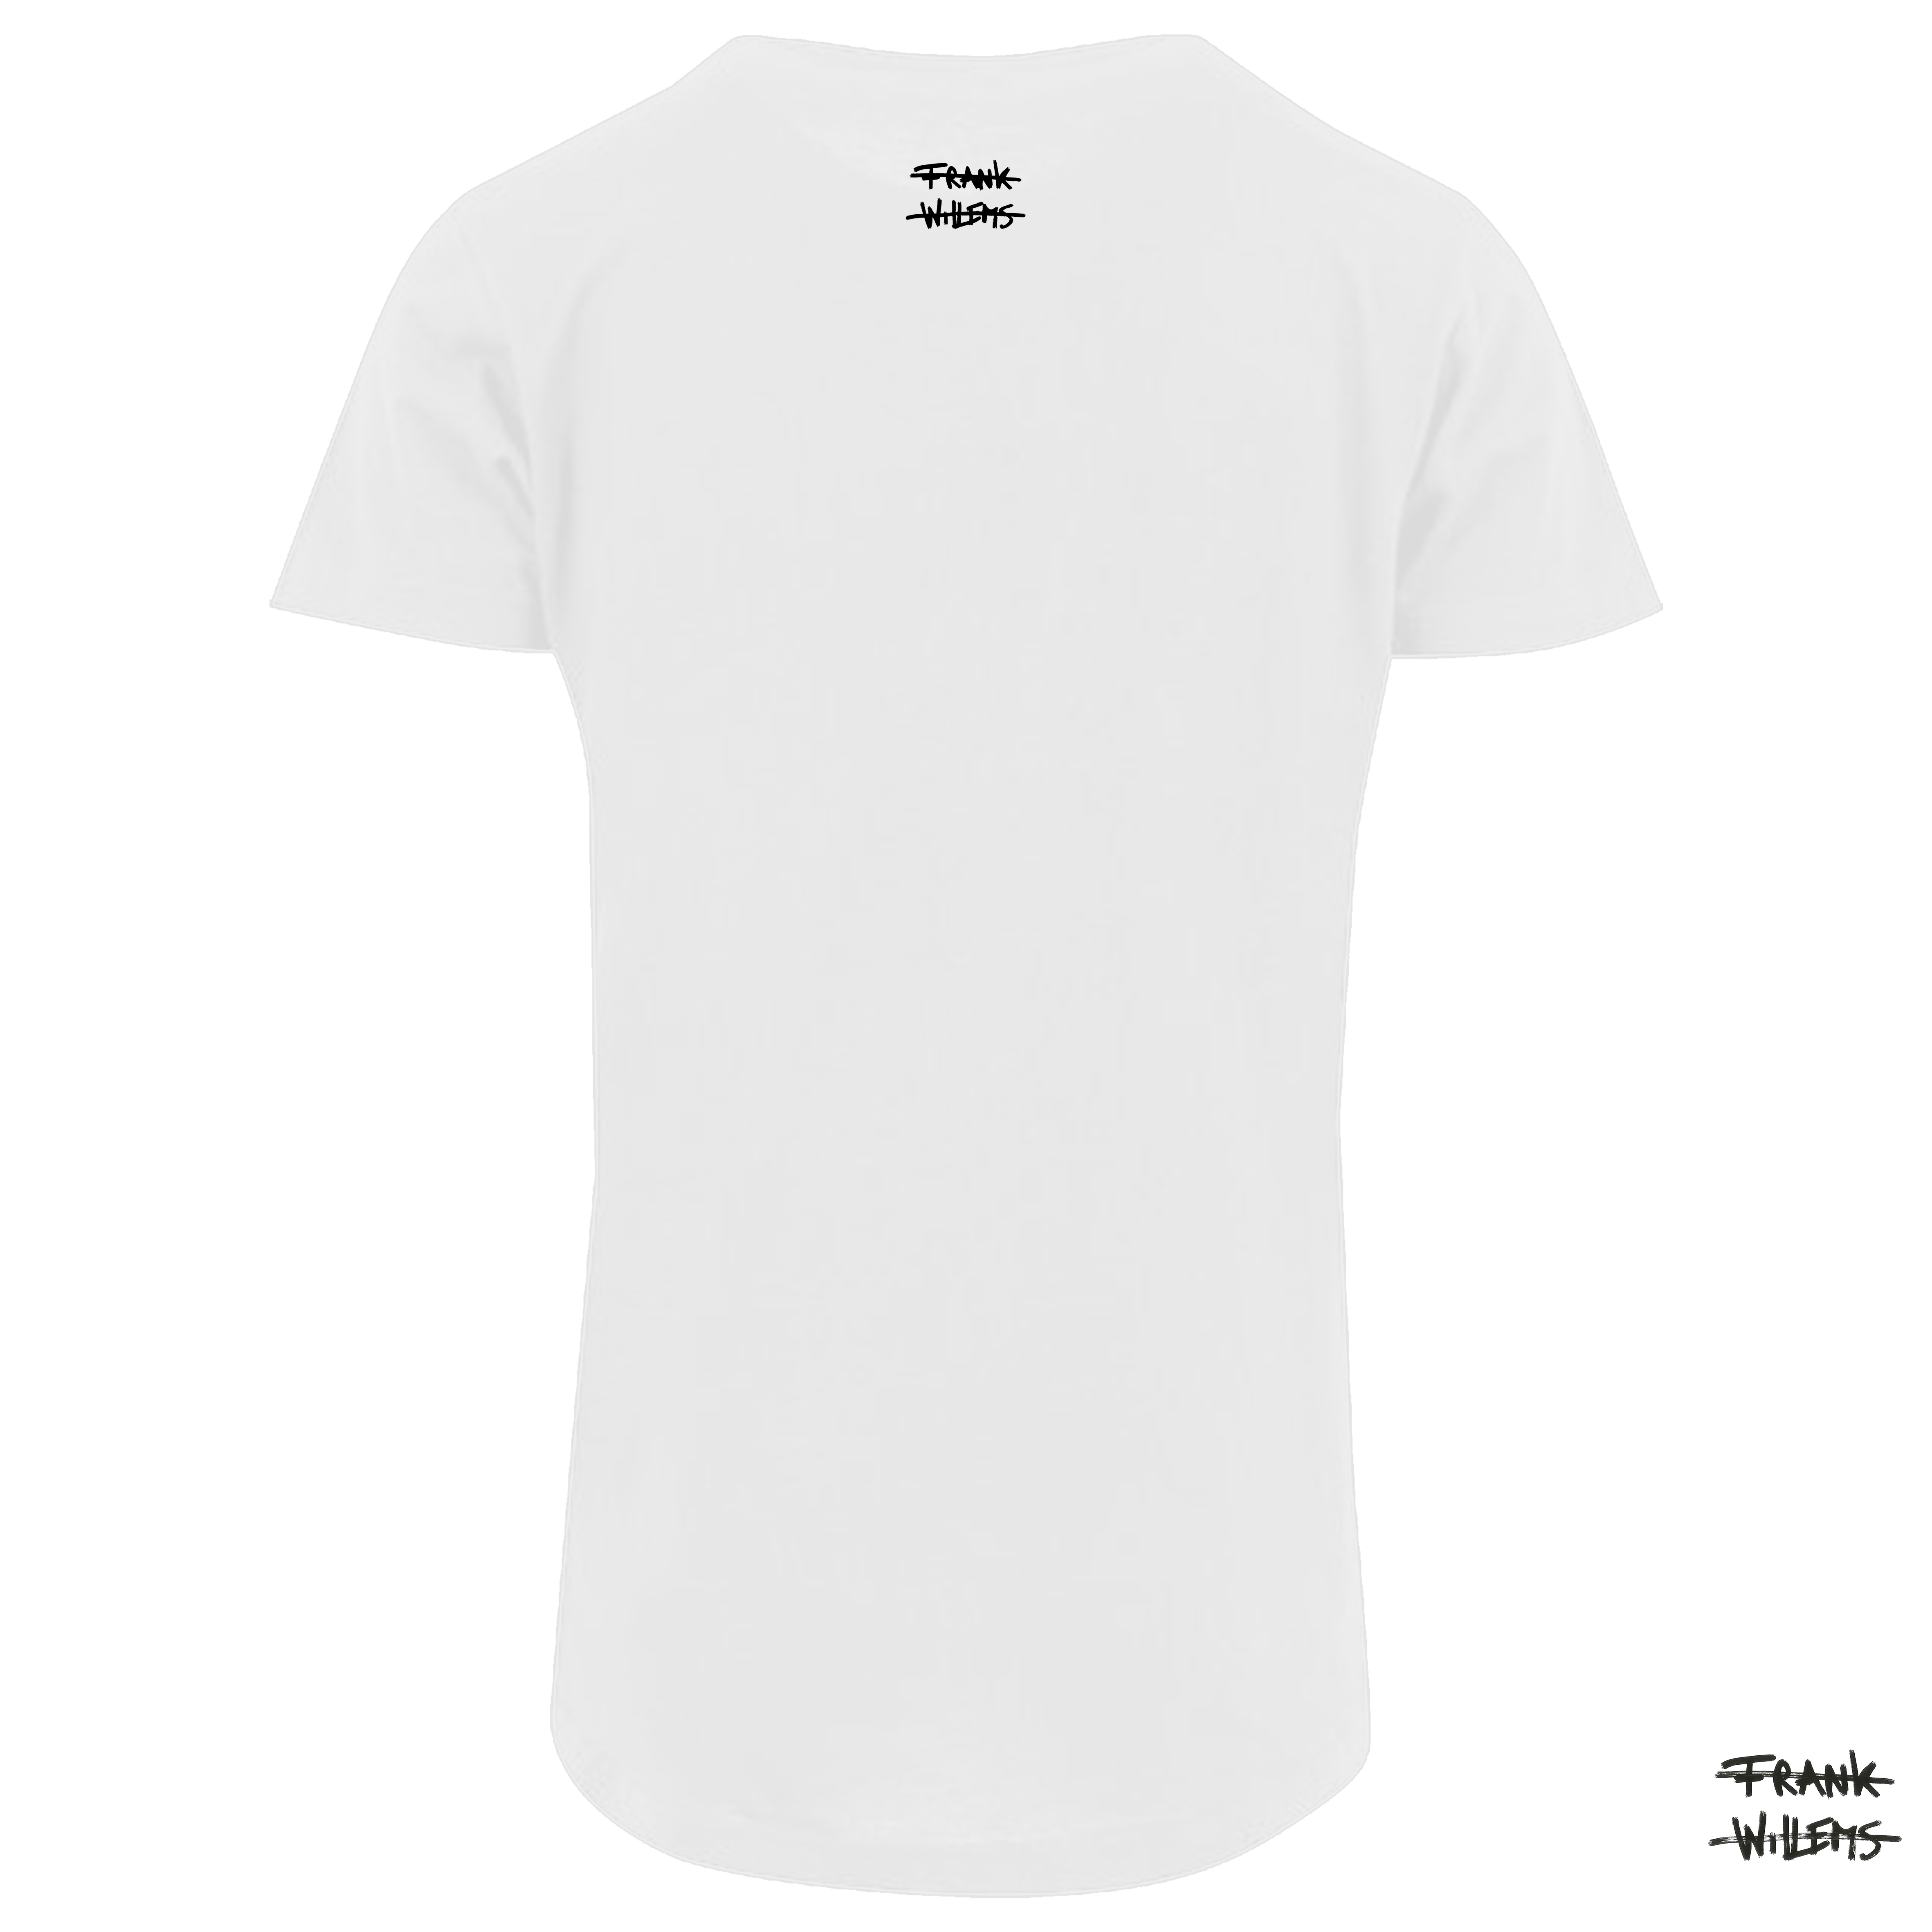 T-shirt back wht 17 - Frank Willems